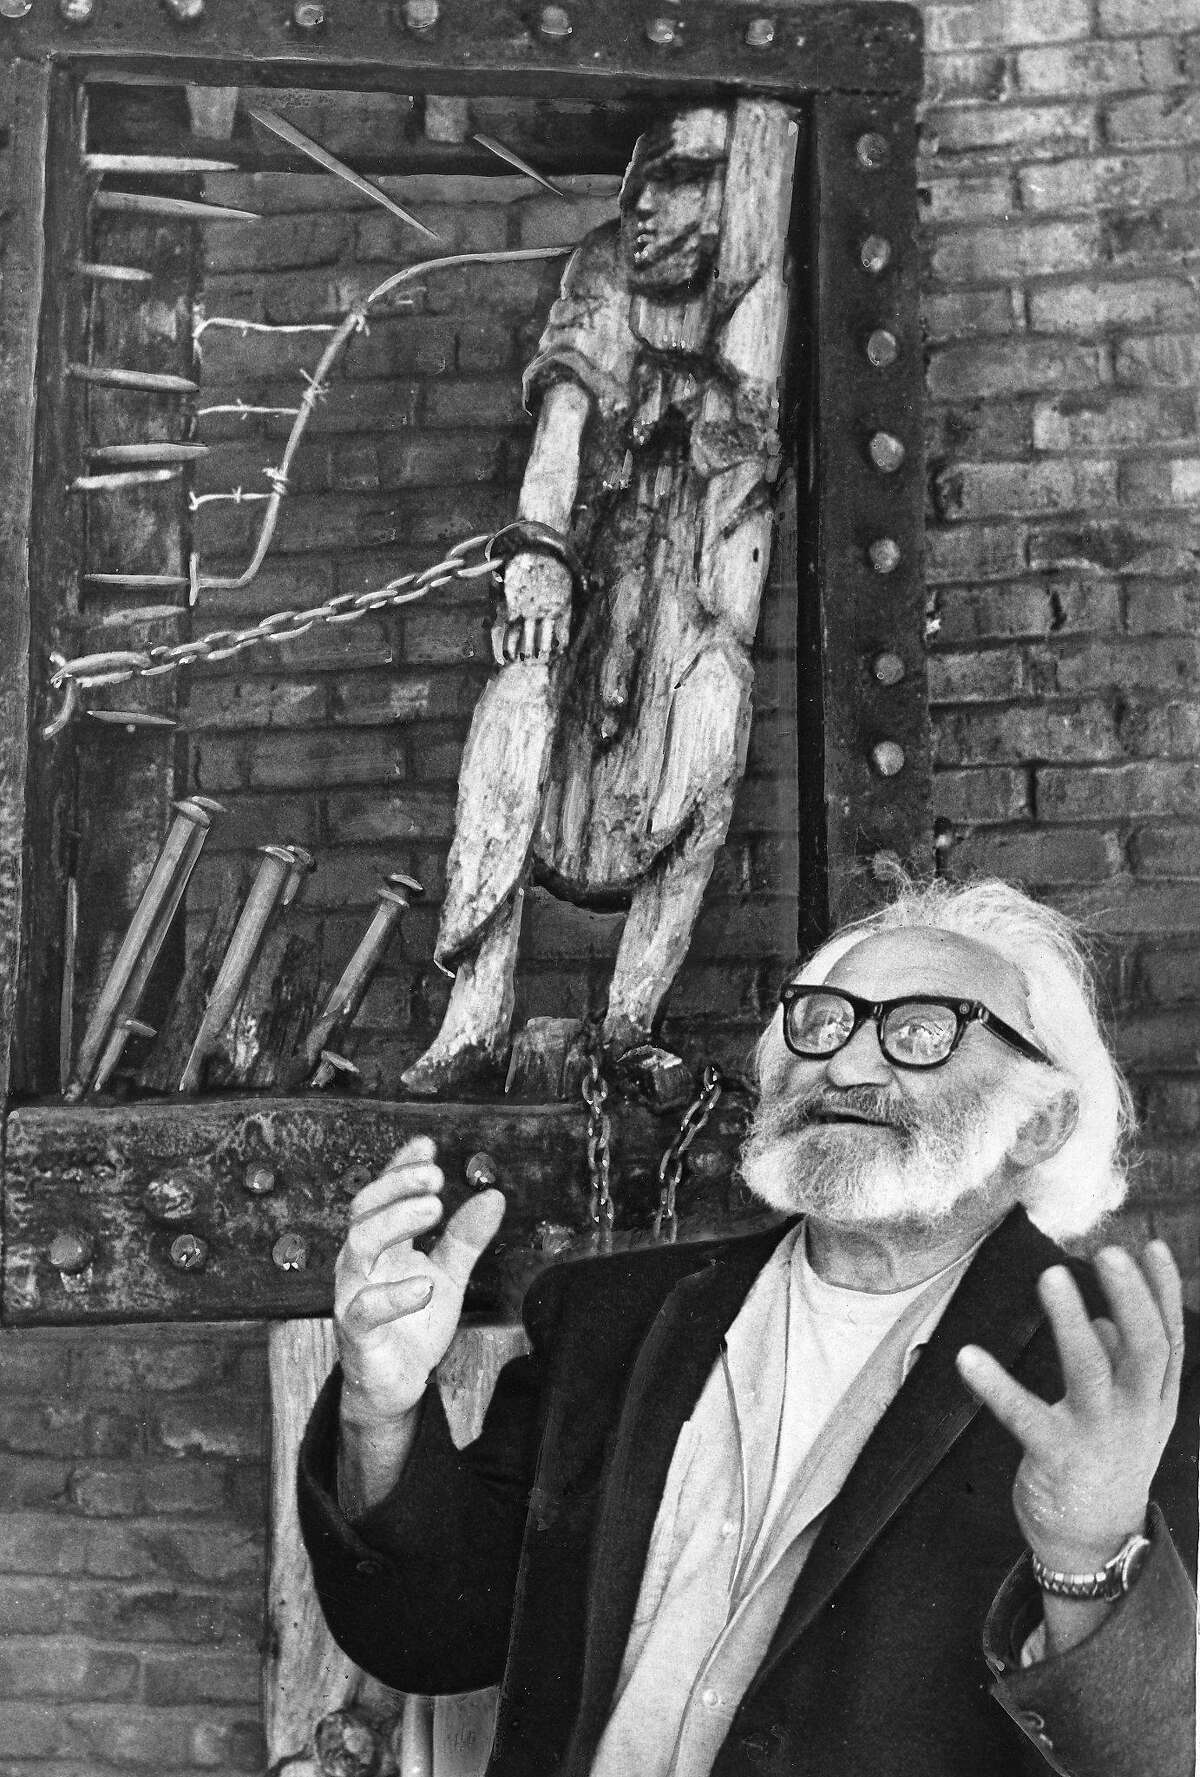 Scupltor Bernard Zakheim, one of the artists who painted some of the Coit Tower murals Photo ran May 16, 1968, P. 11